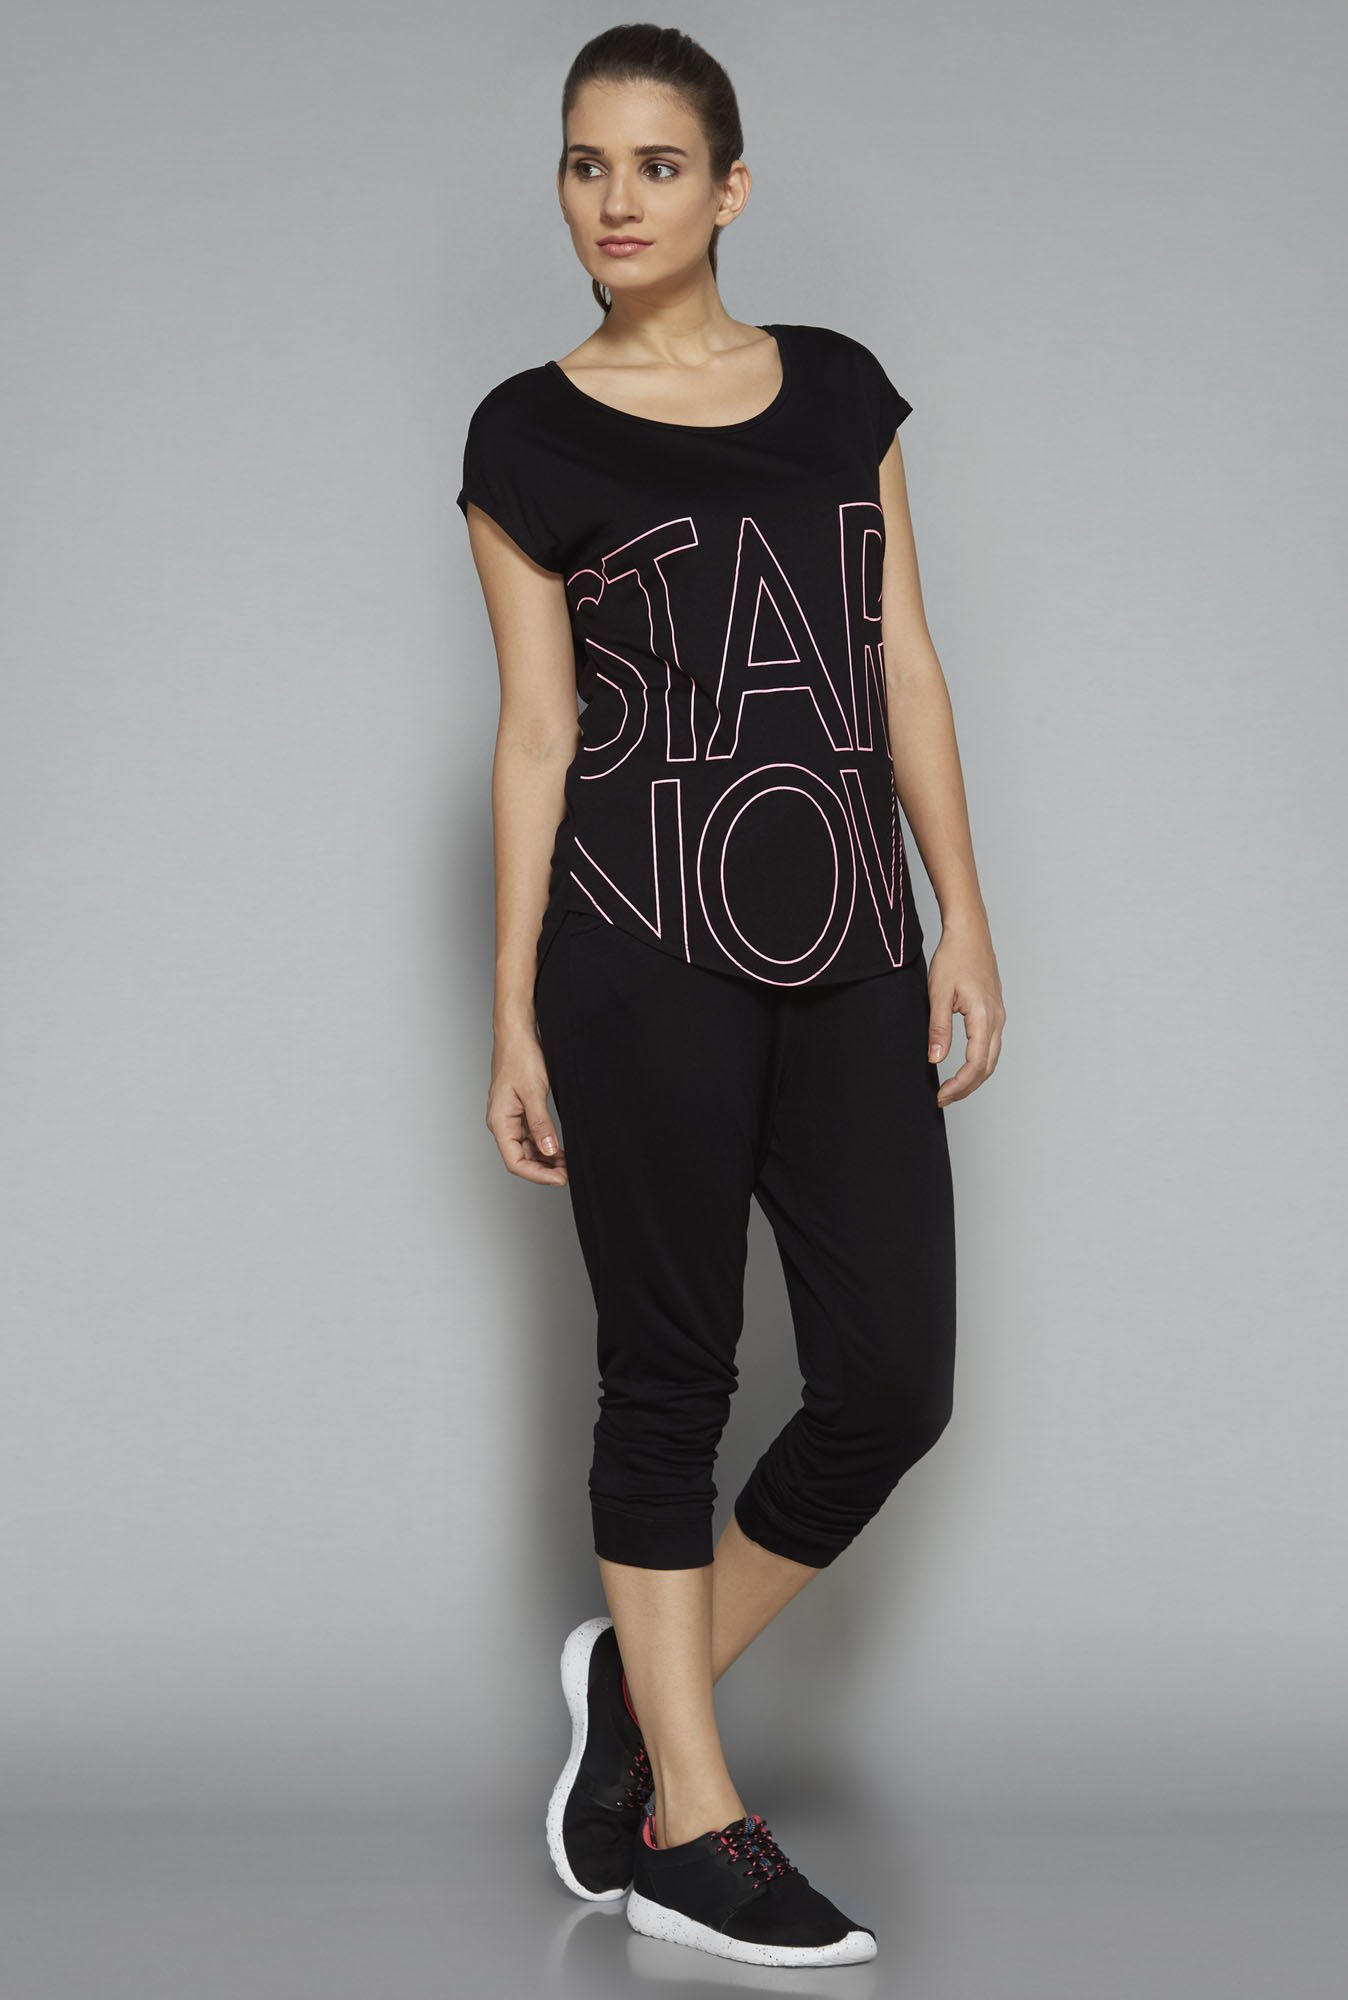 Westsport by Westside Black Printed T-Shirt